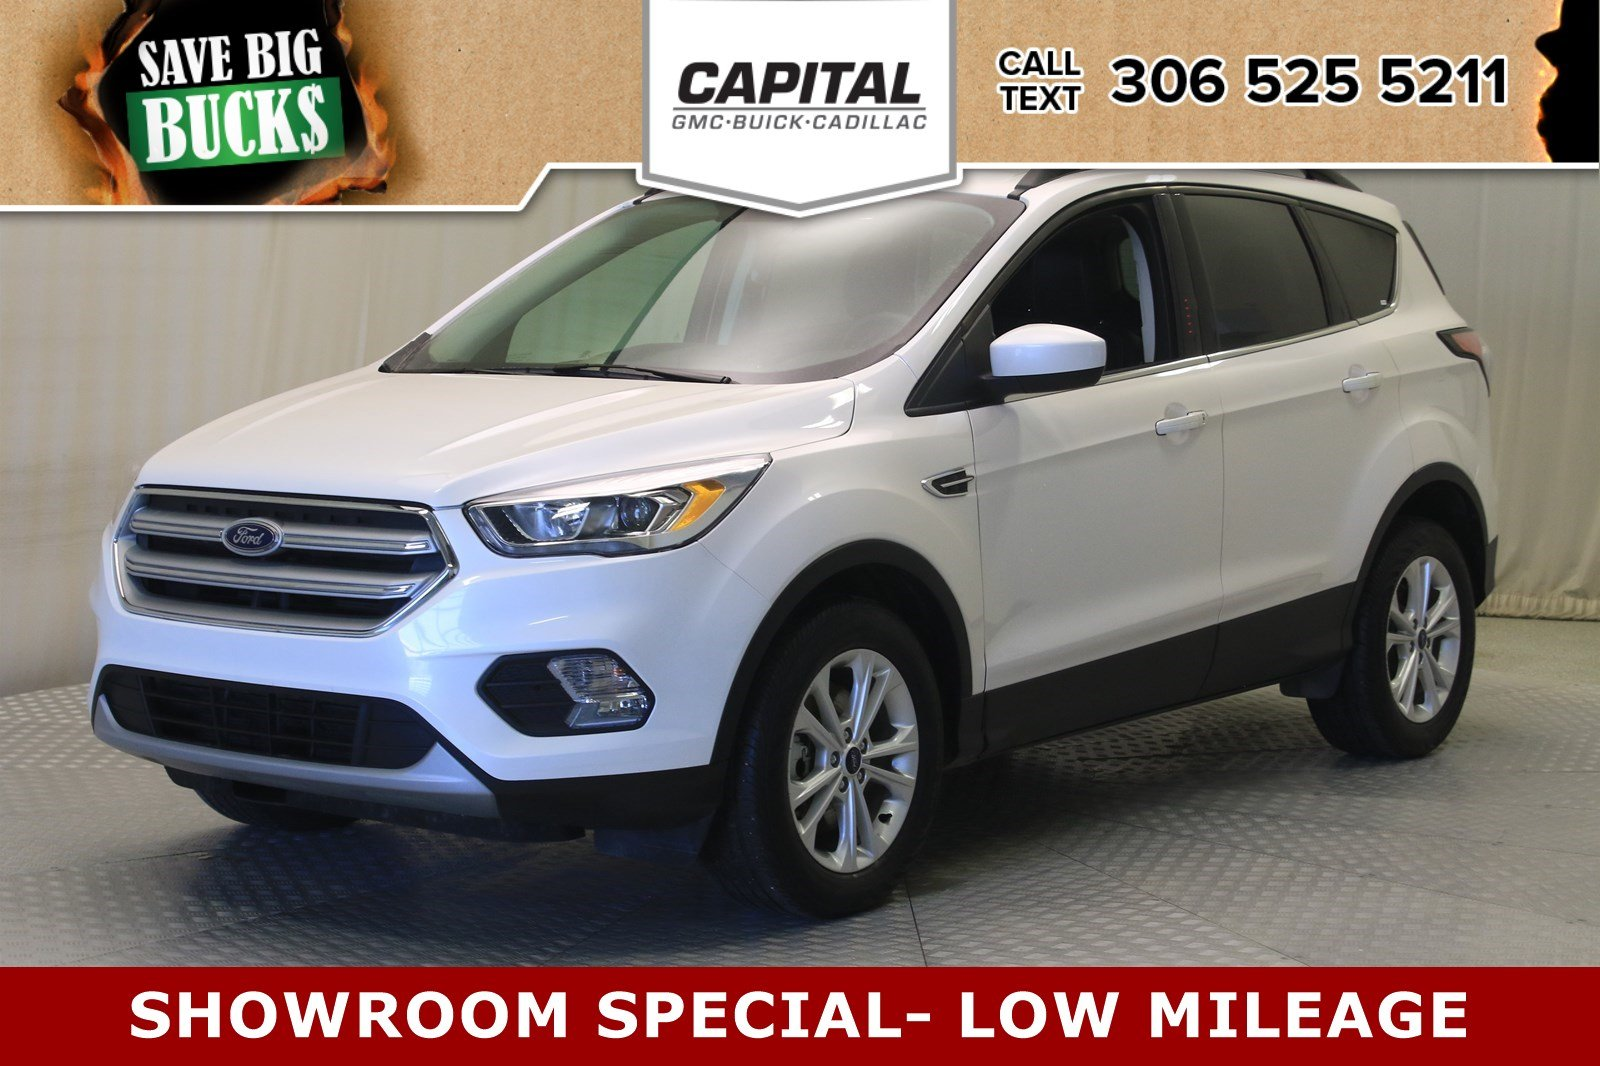 Ford Escape Sunroof >> Certified Pre Owned 2018 Ford Escape Sel 4wd Nav Sunroof Leather 4wd Stock 19086a